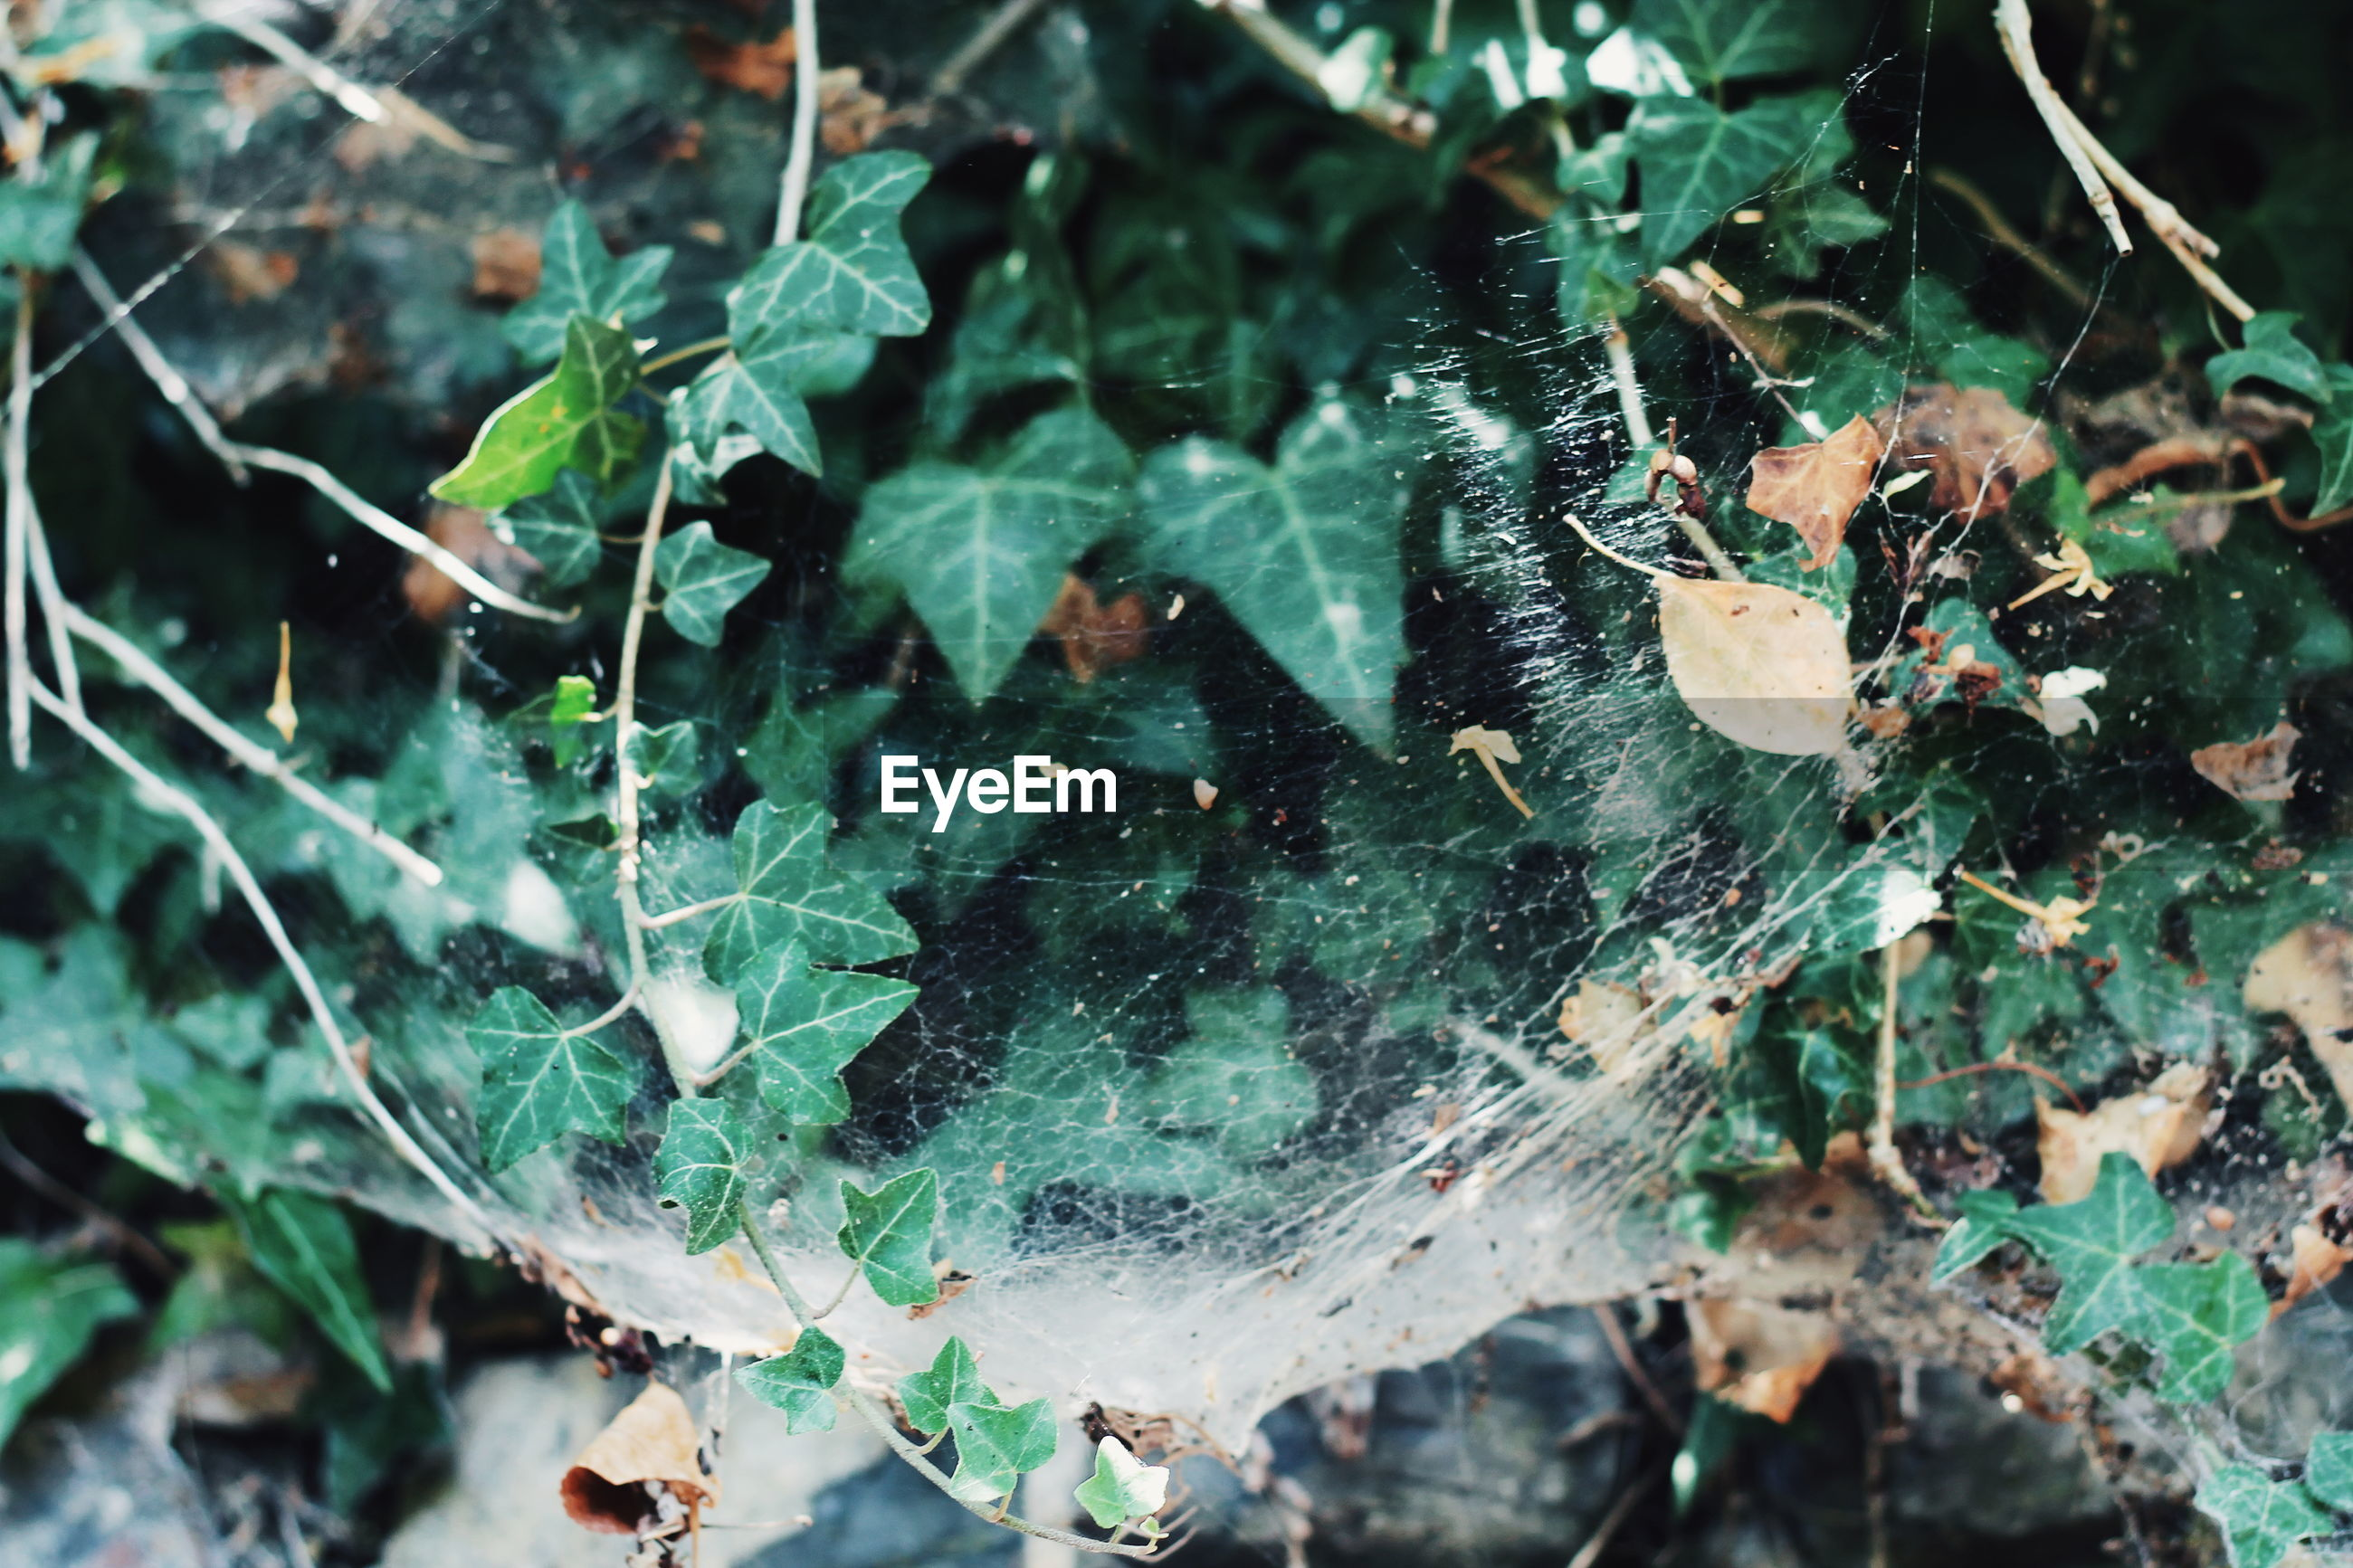 CLOSE-UP OF WET SPIDER WEB ON PLANTS